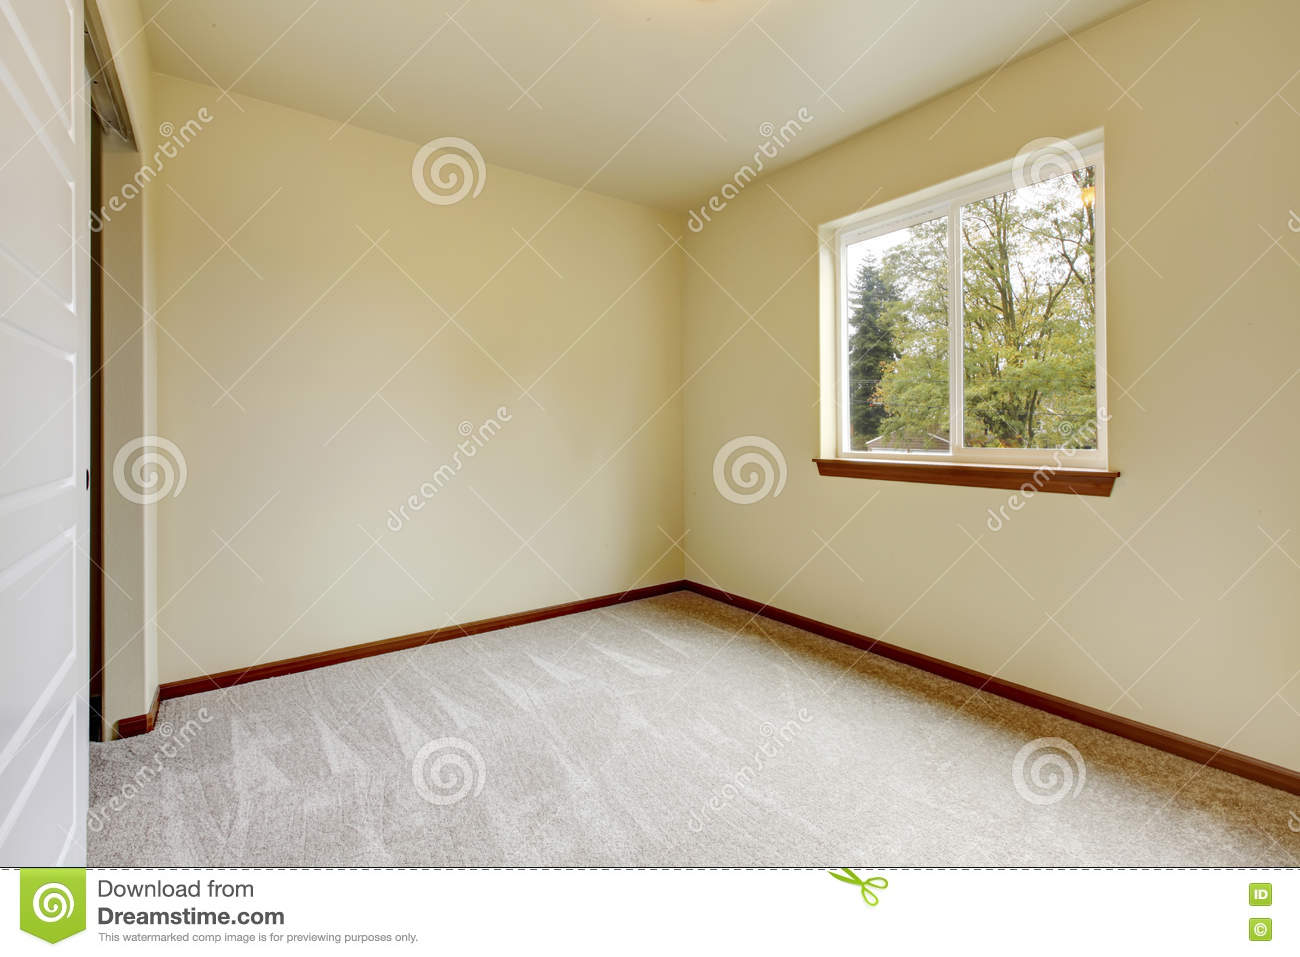 Bright empty room with carpet floor window ivory walls stock photo image 73072102 - Very small space of time image ...